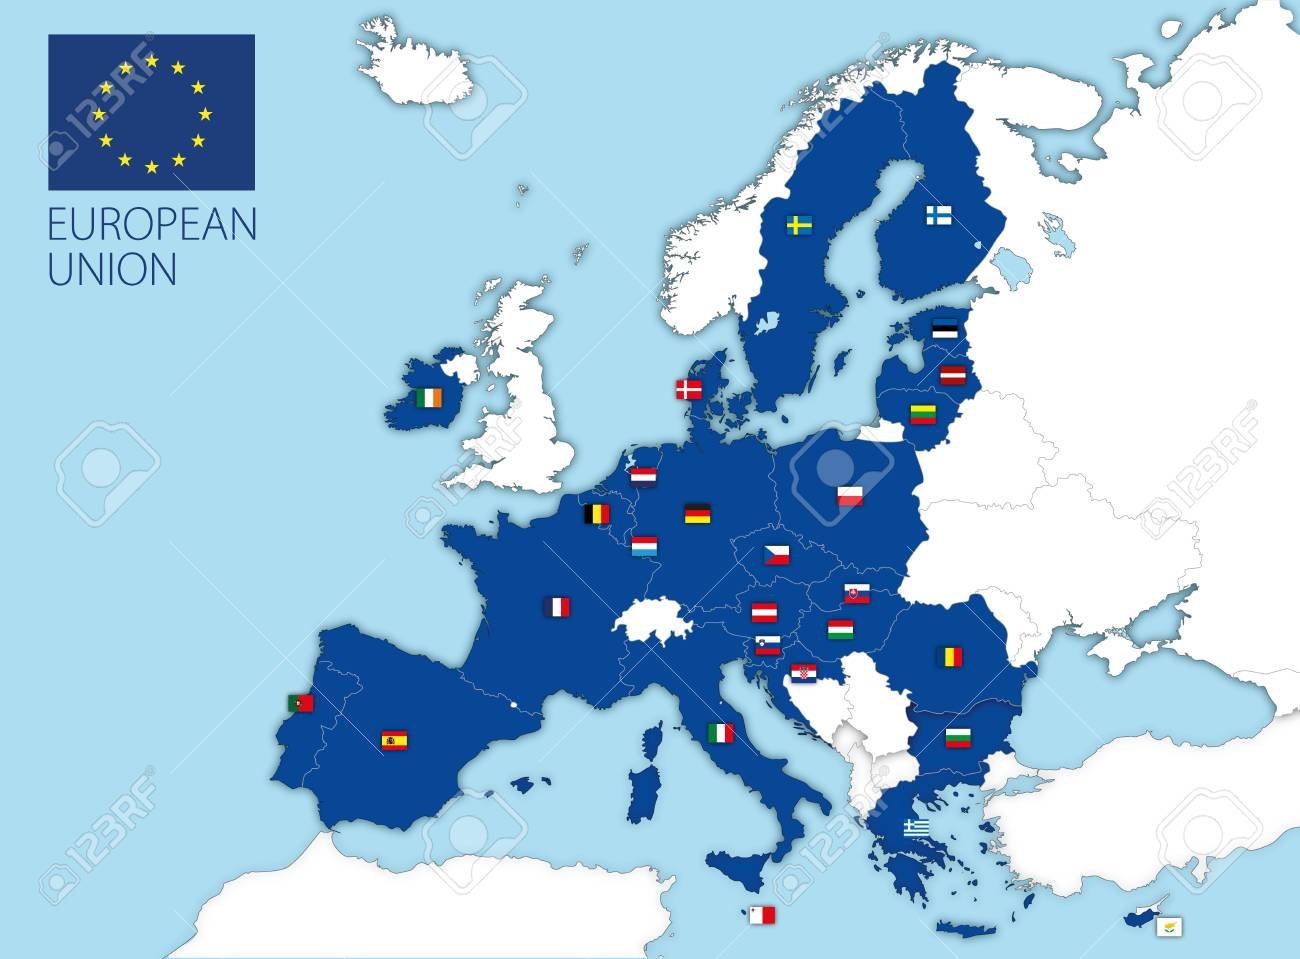 European Union map and flags after the UK Brexit